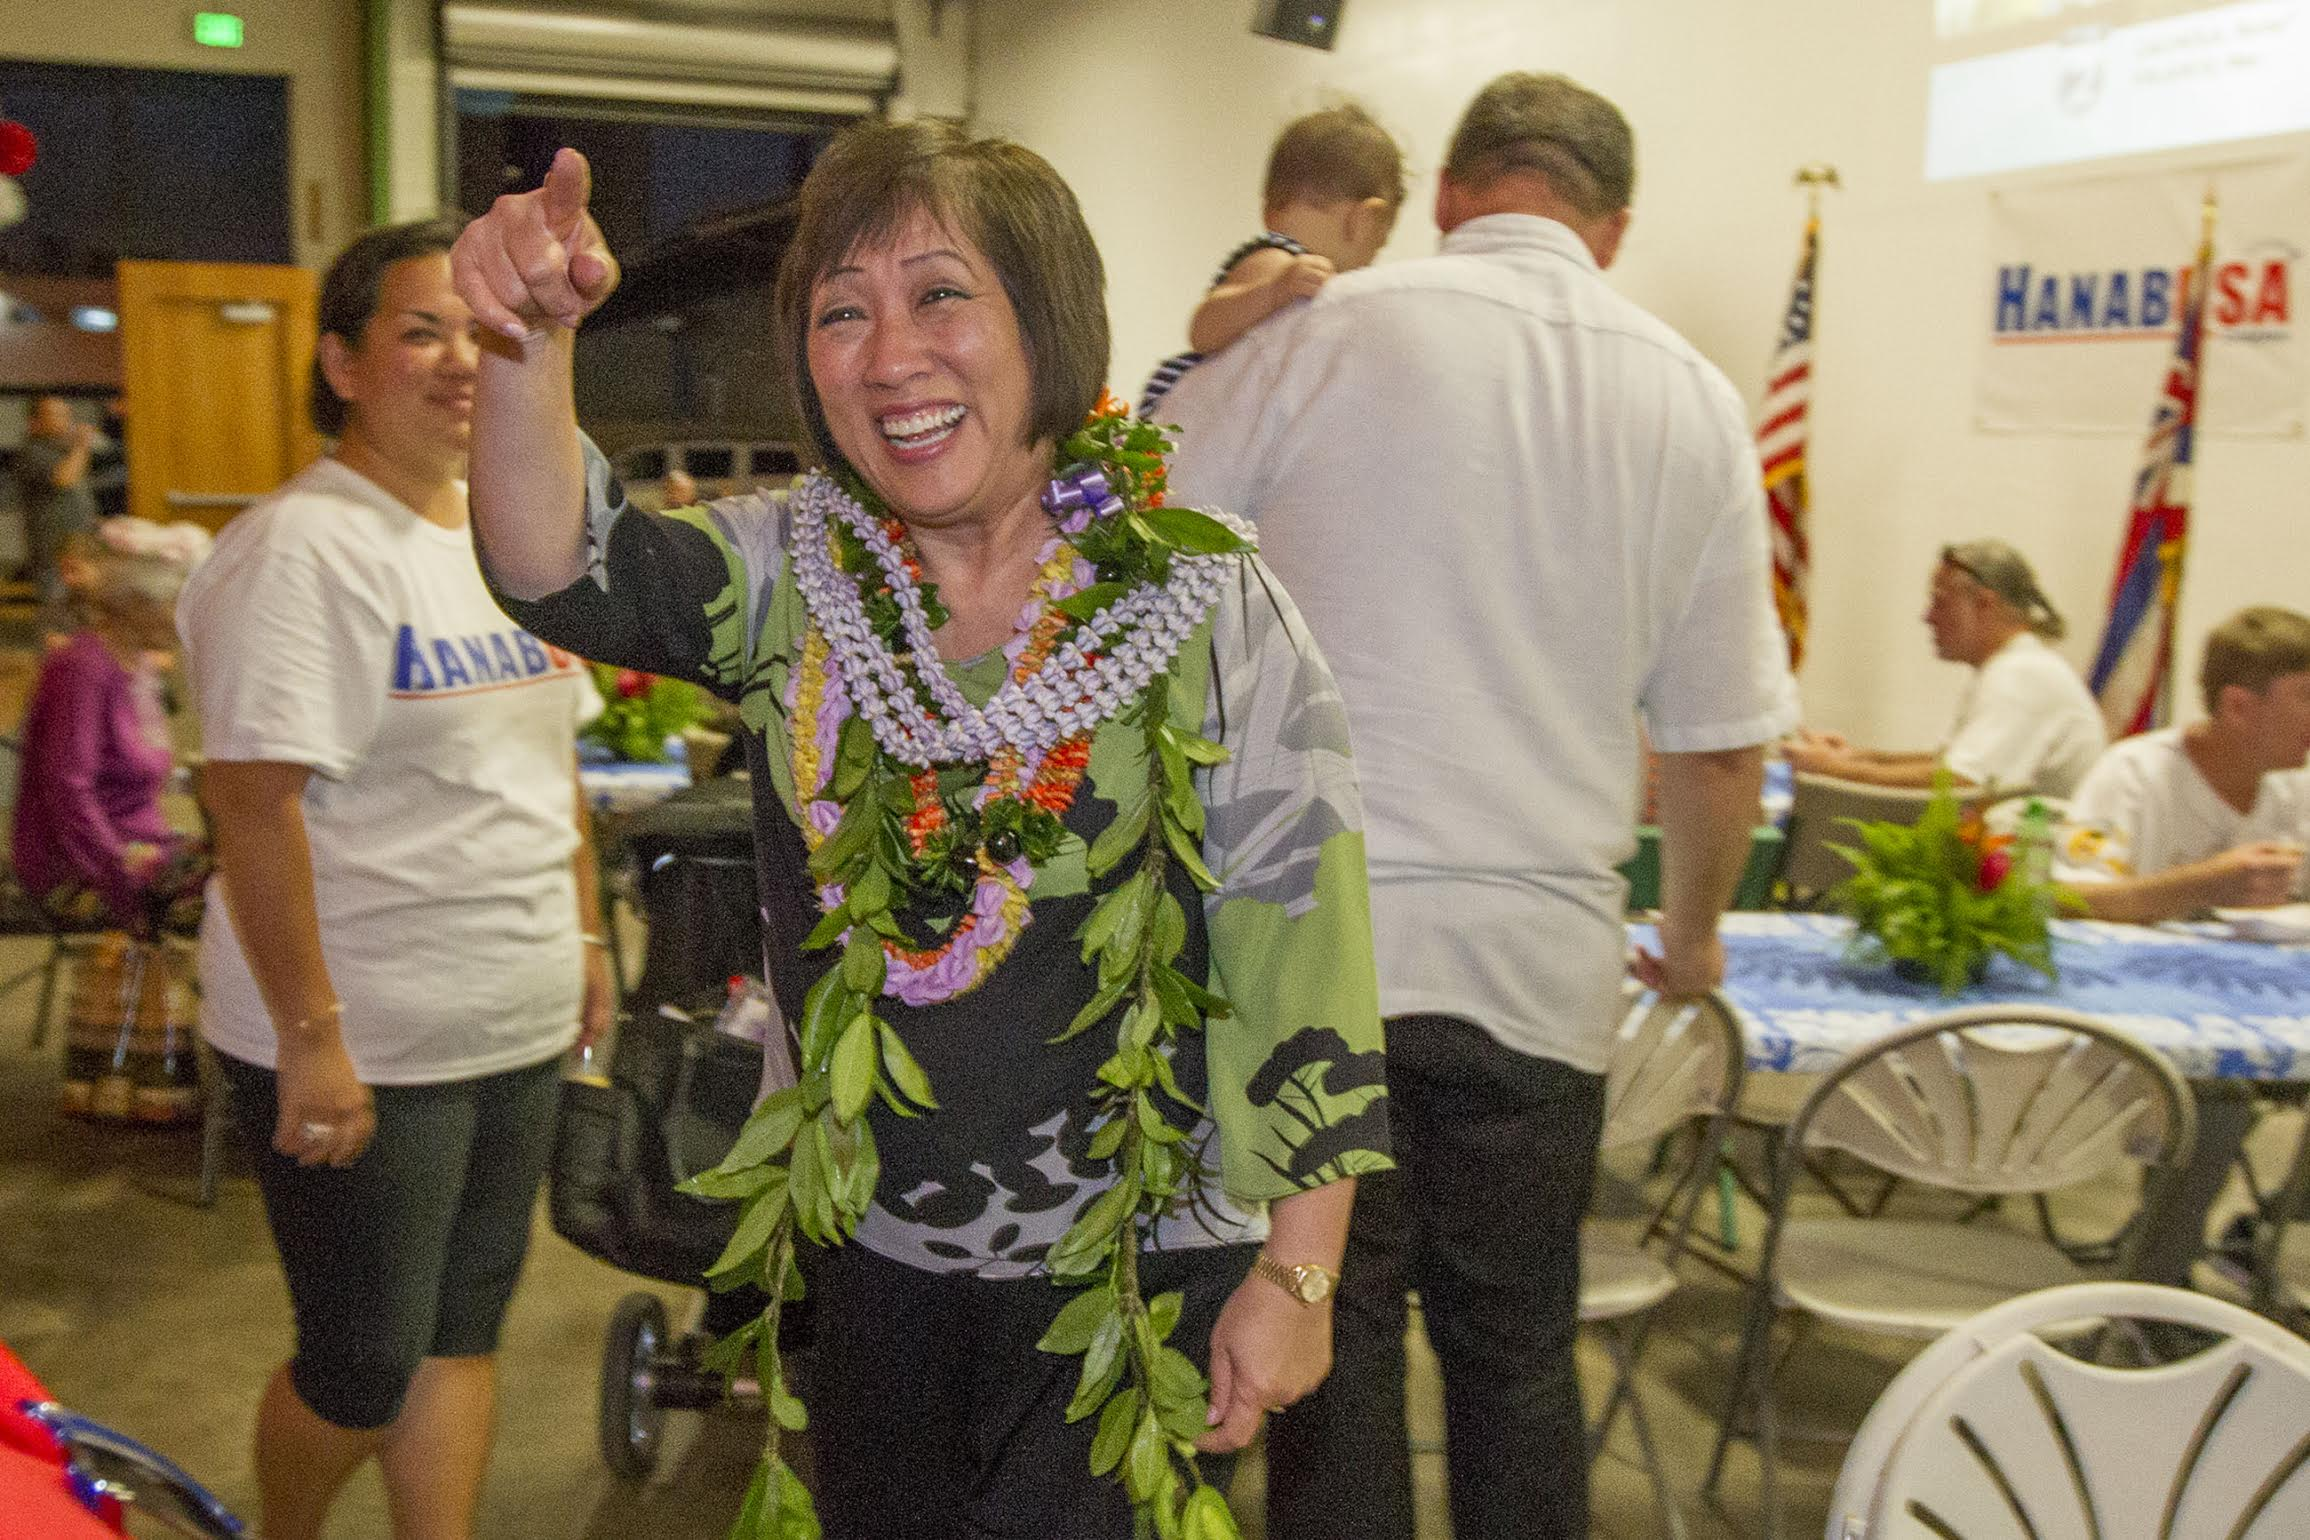 <p>The night held no suspense for Colleen Hanabusa, winner of the Democratic primary for the 1st Congressional District. (Eugene Tanner/Civil Beat)</p>